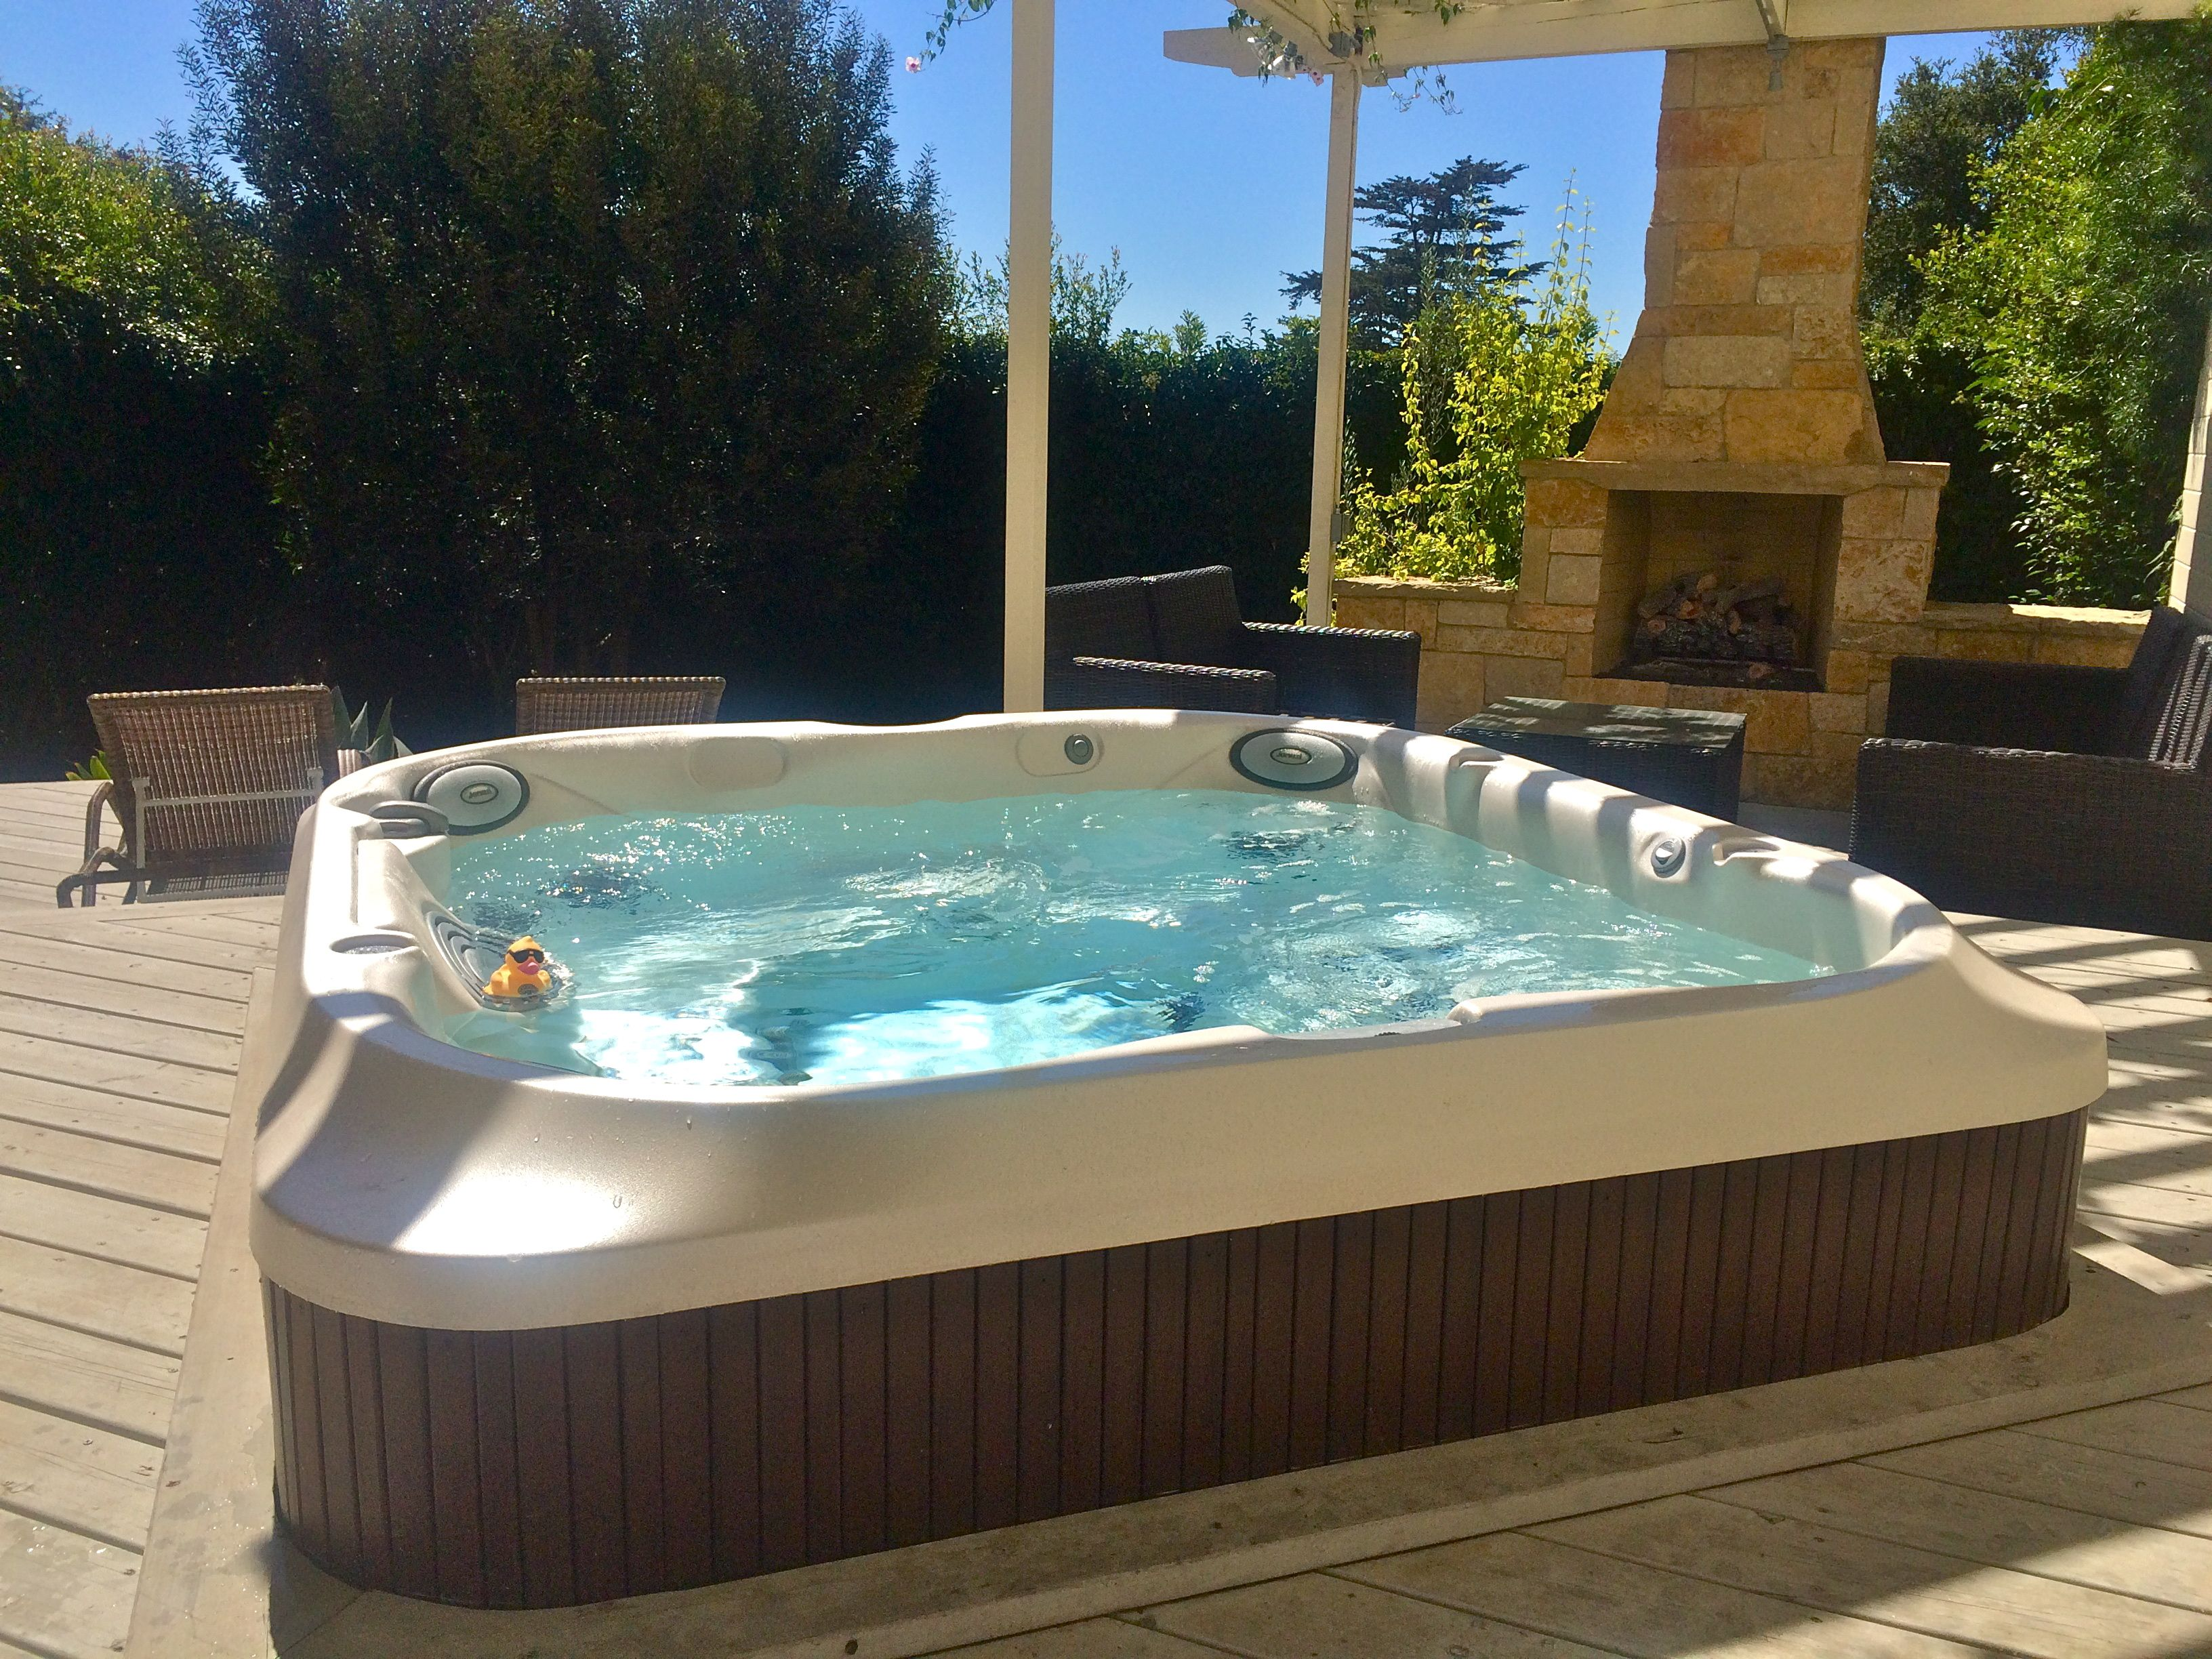 Rubber ducky enjoying a soak in our jacuzzi j 335 spa - Jacuzzi spa exterieur ...